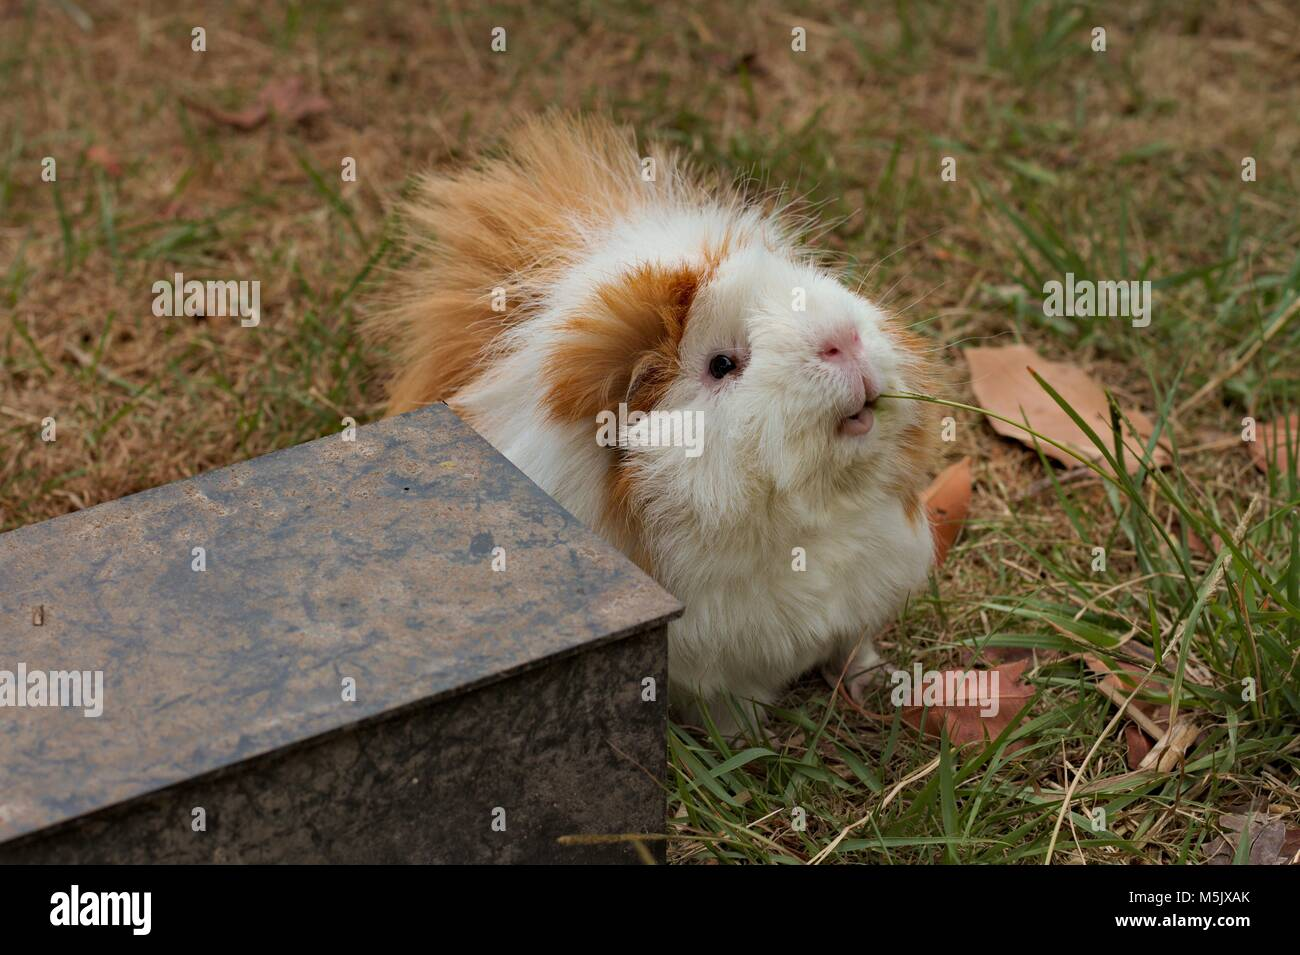 Brown and white Abyssinian guinea pig, cavy, eating grass on a dry lawn. Stock Photo